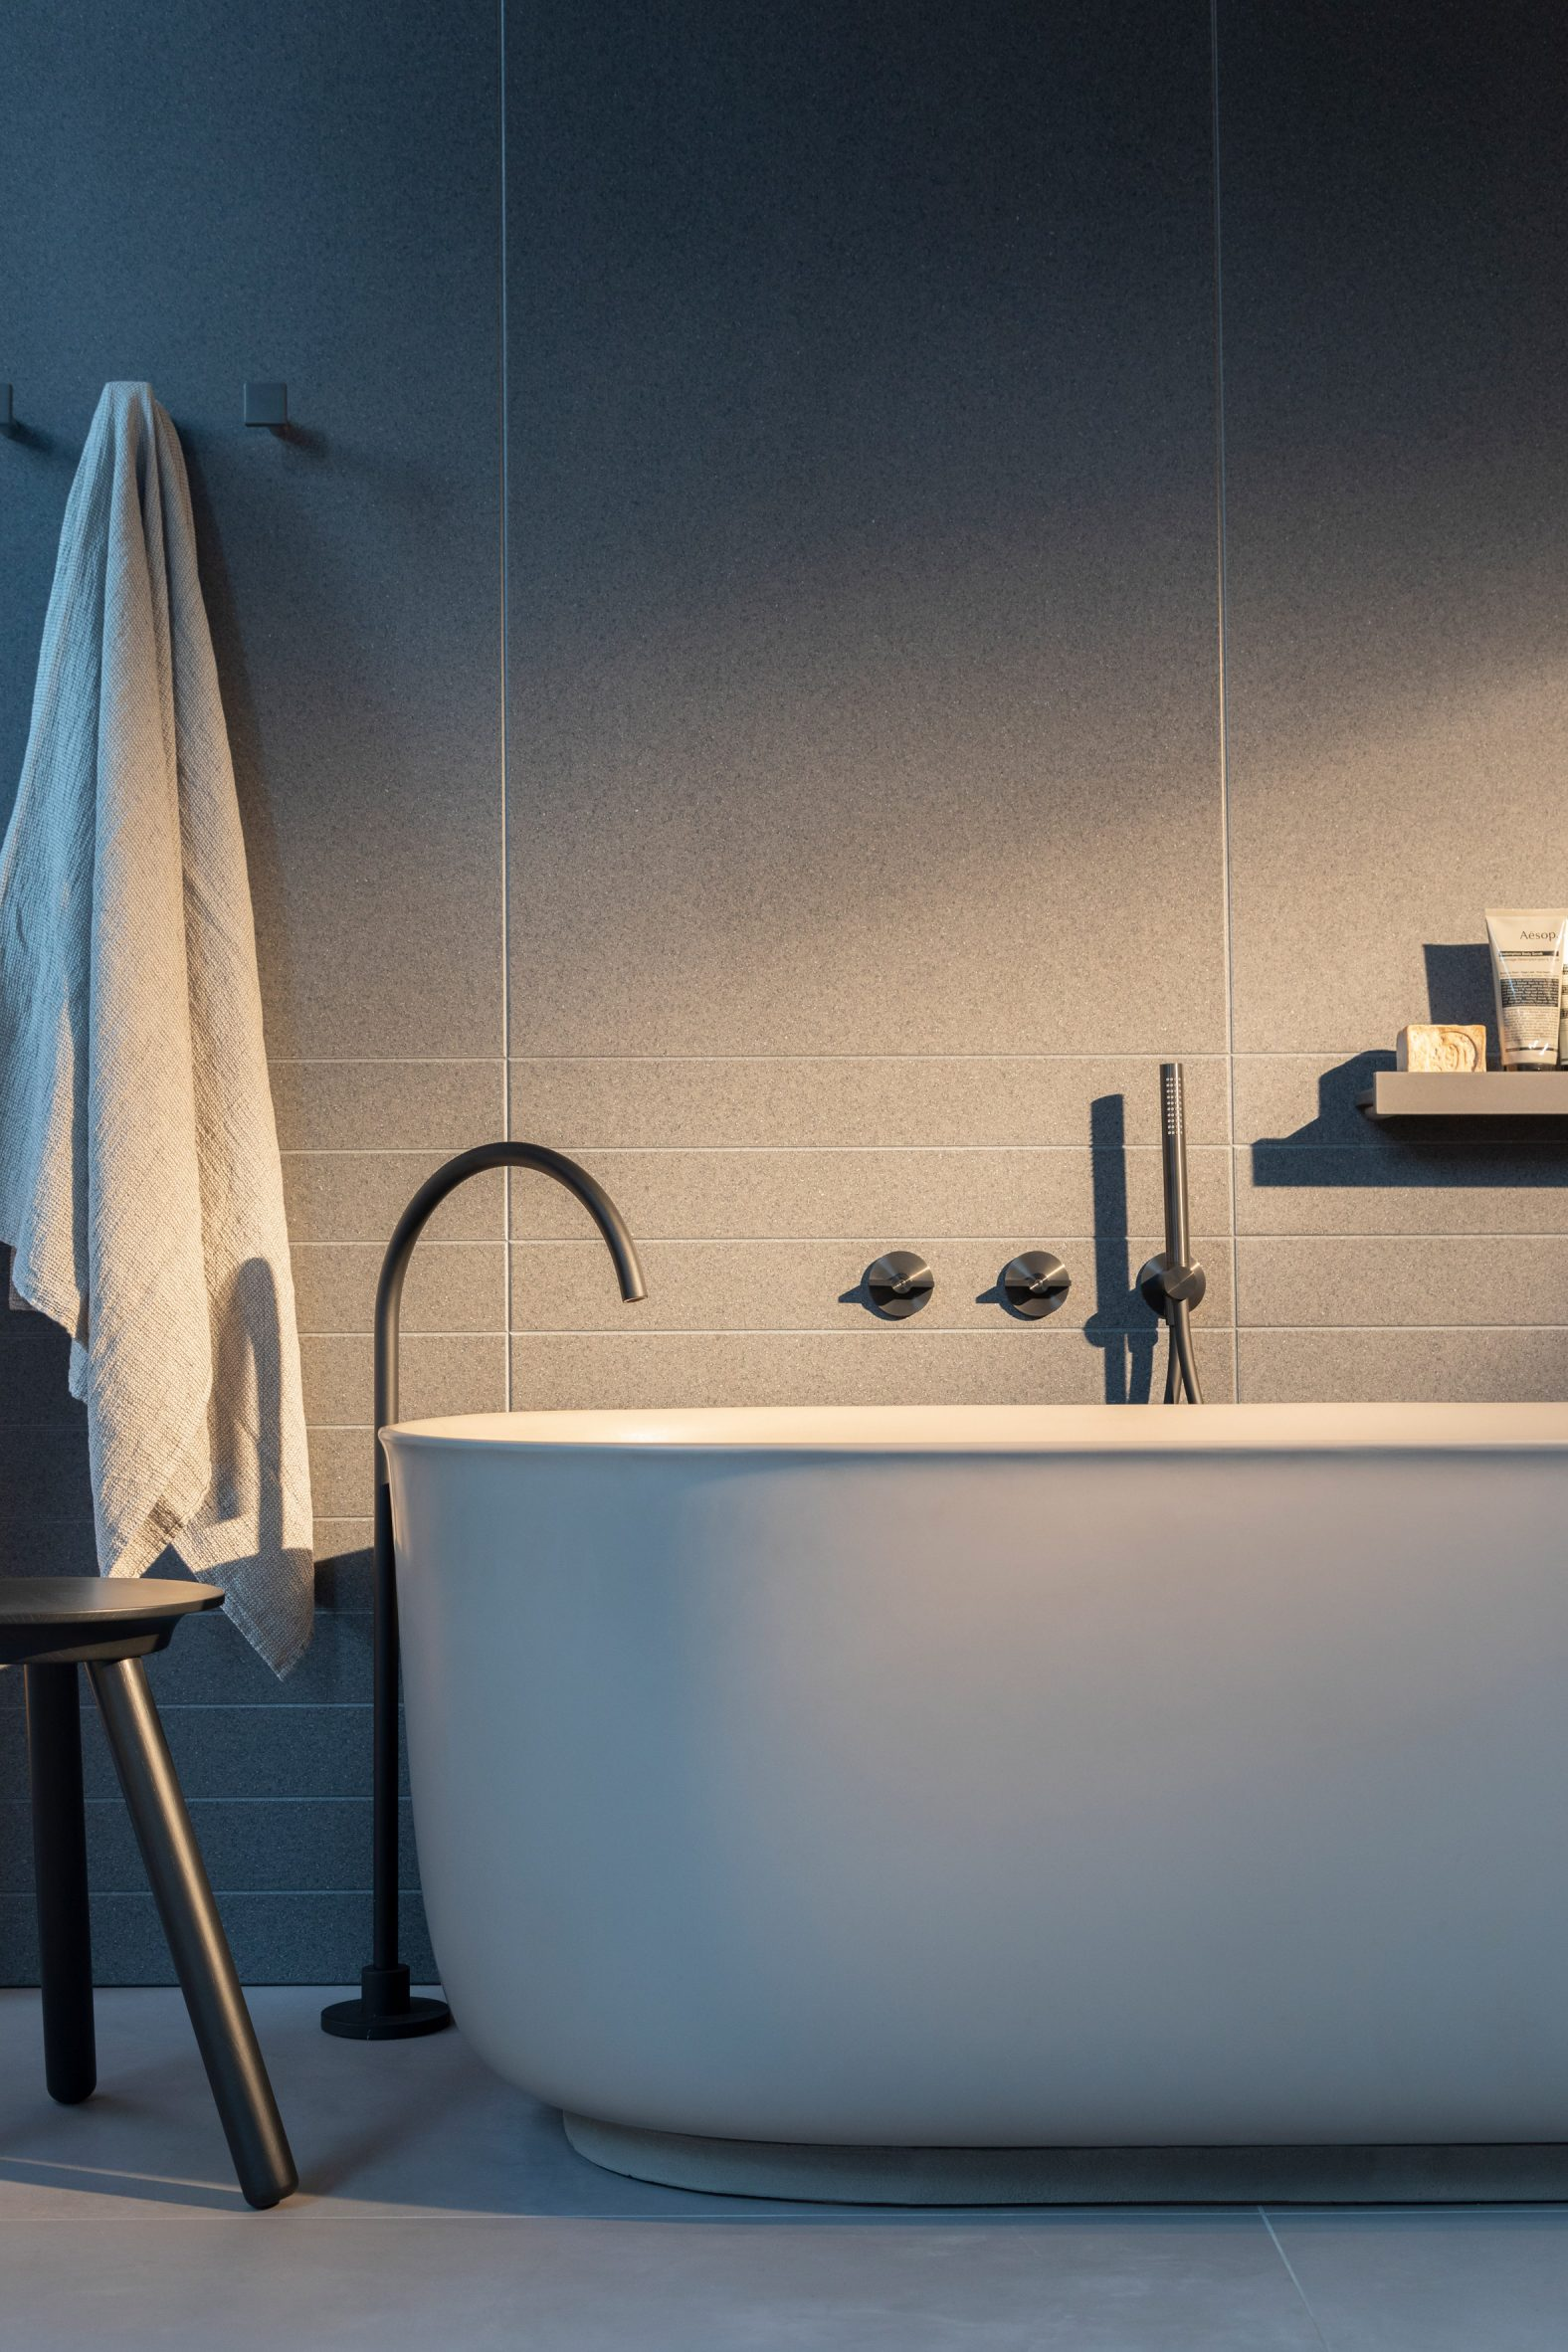 A bathroom with a bath and tap from the Q collection